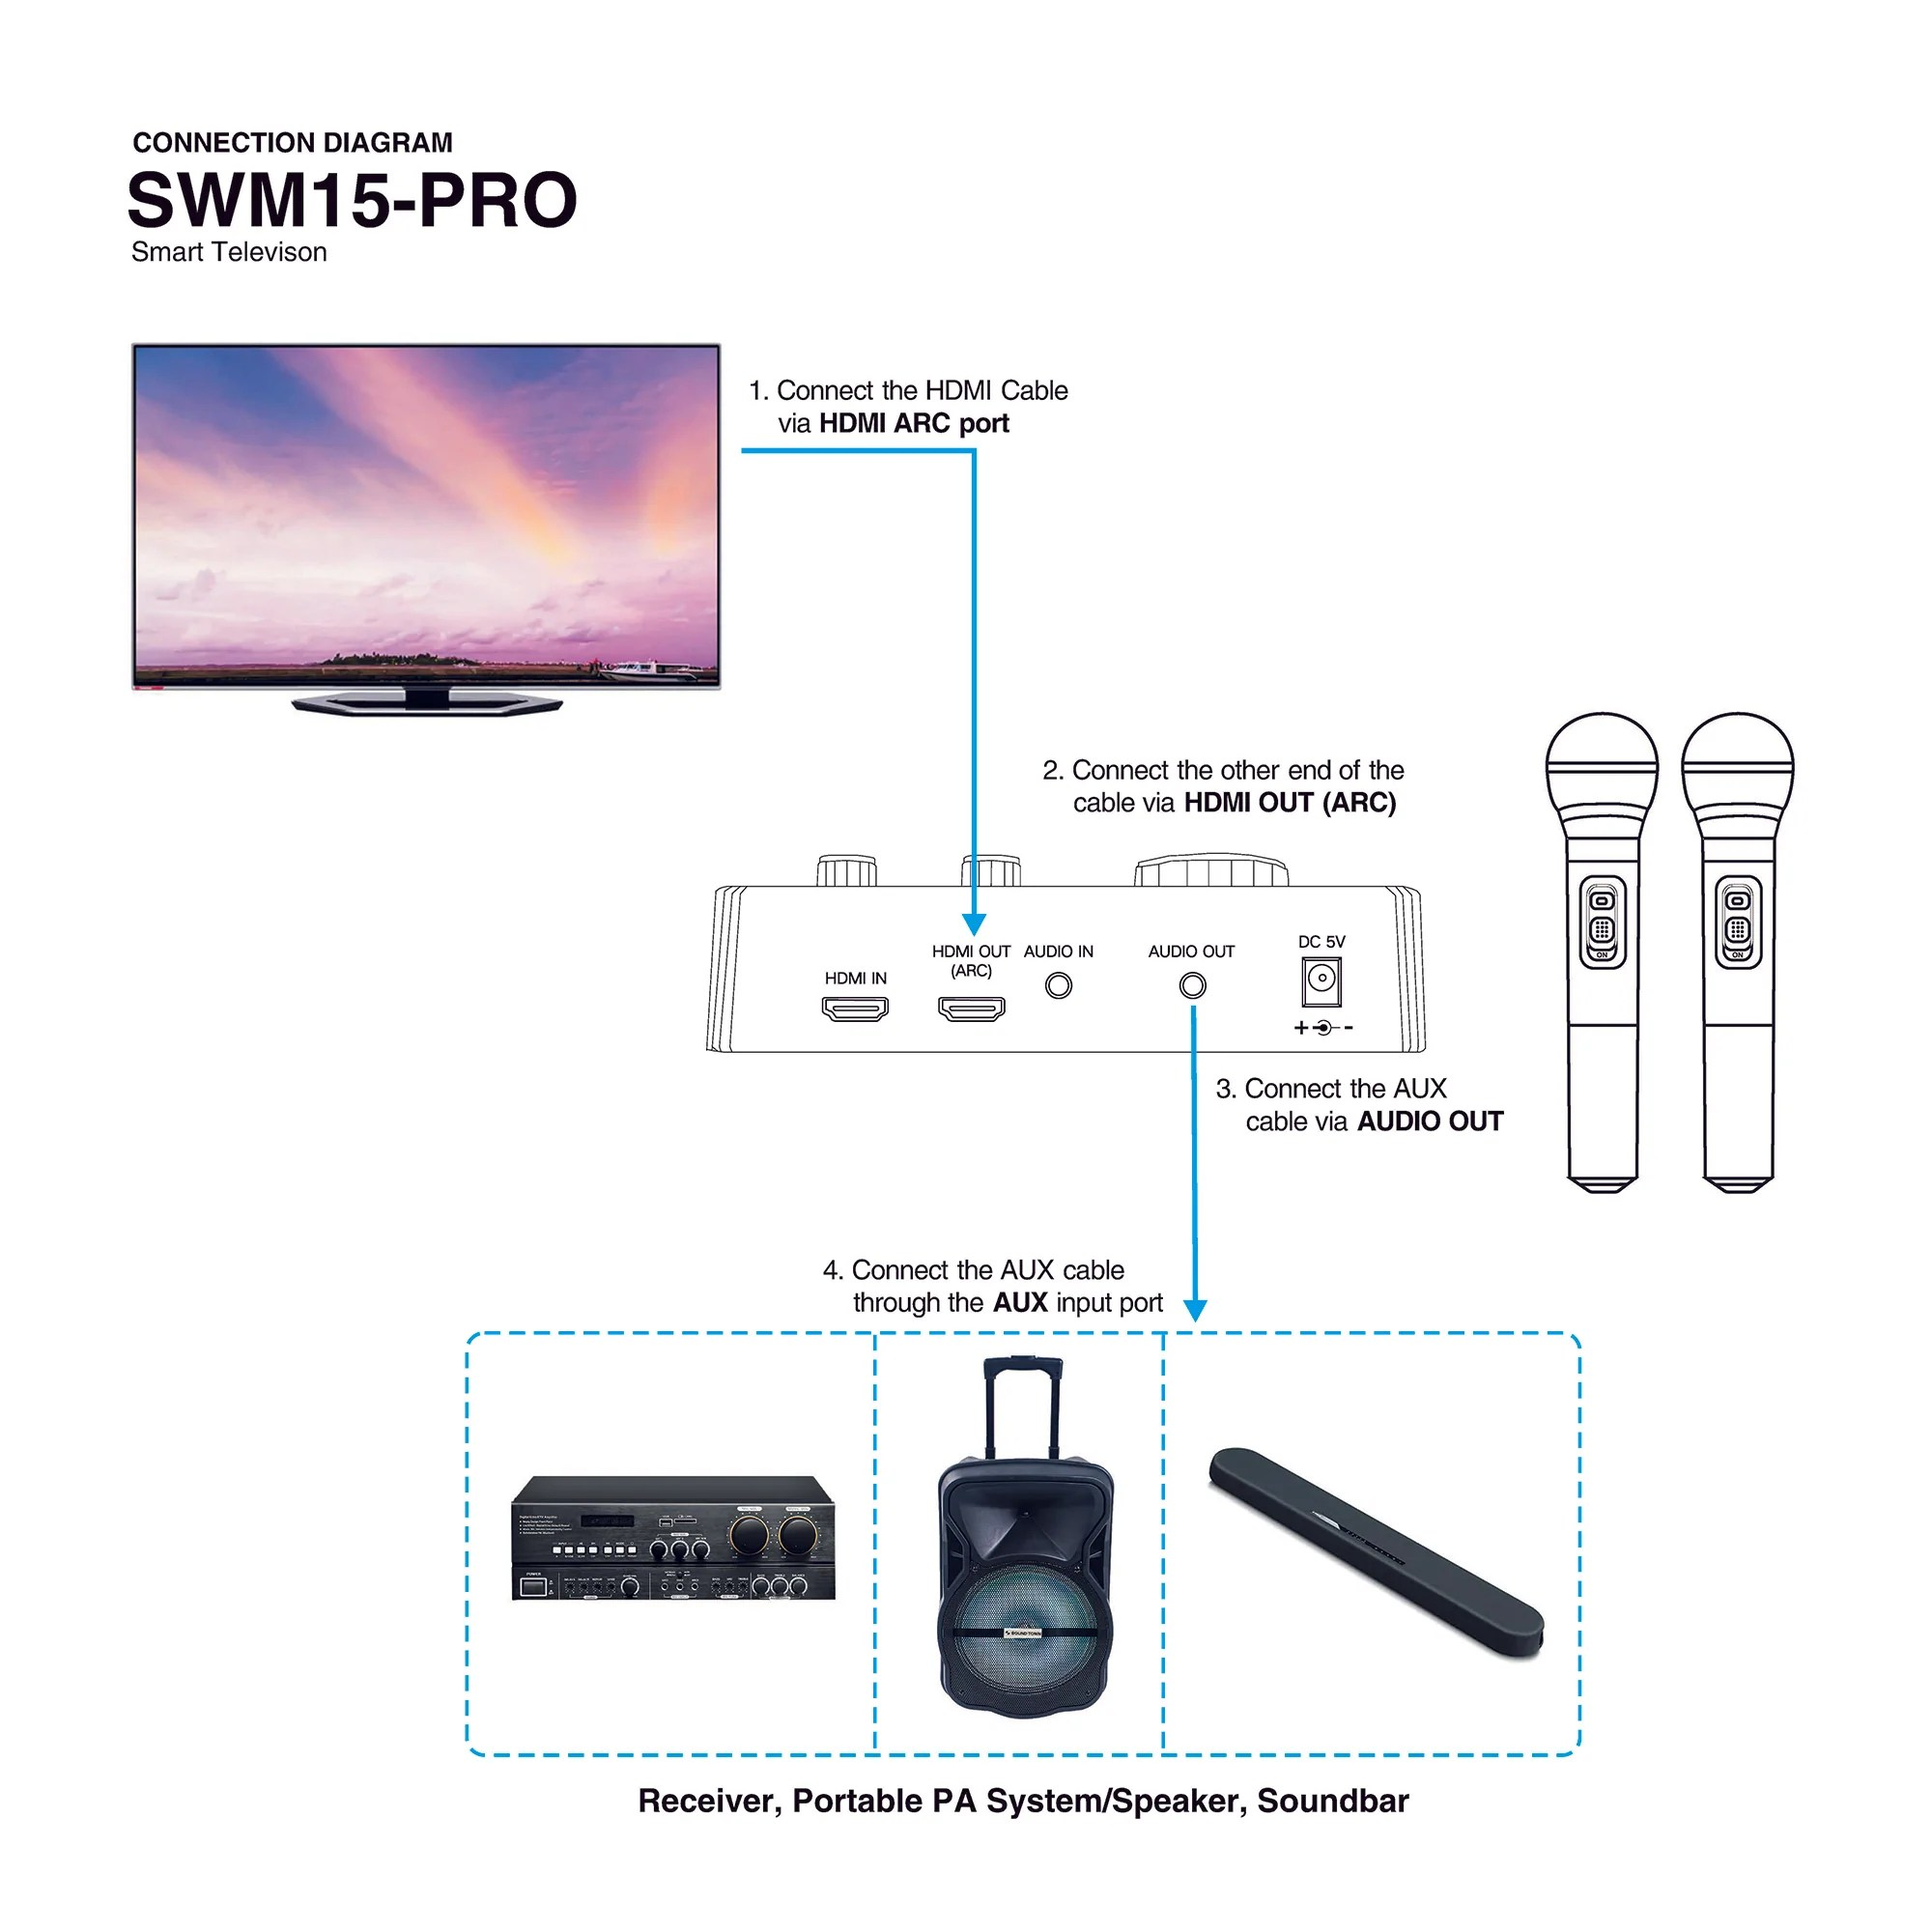 medium resolution of  sound town swm15 pro karaoke microphone system connection diagram hdmi arc smart tv television how